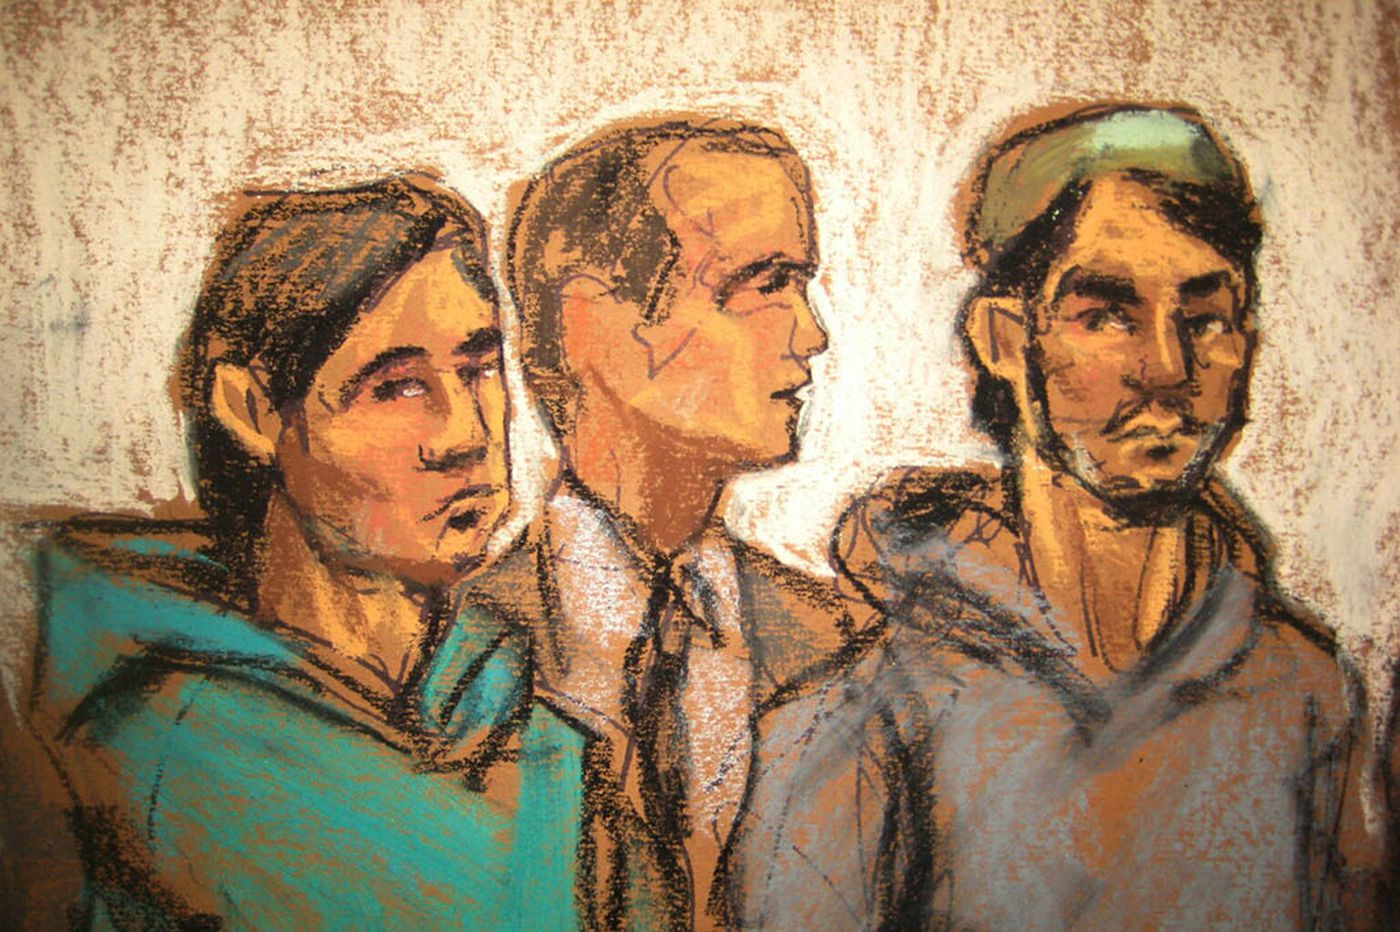 ISIS suspects had connections in Philly, Dover